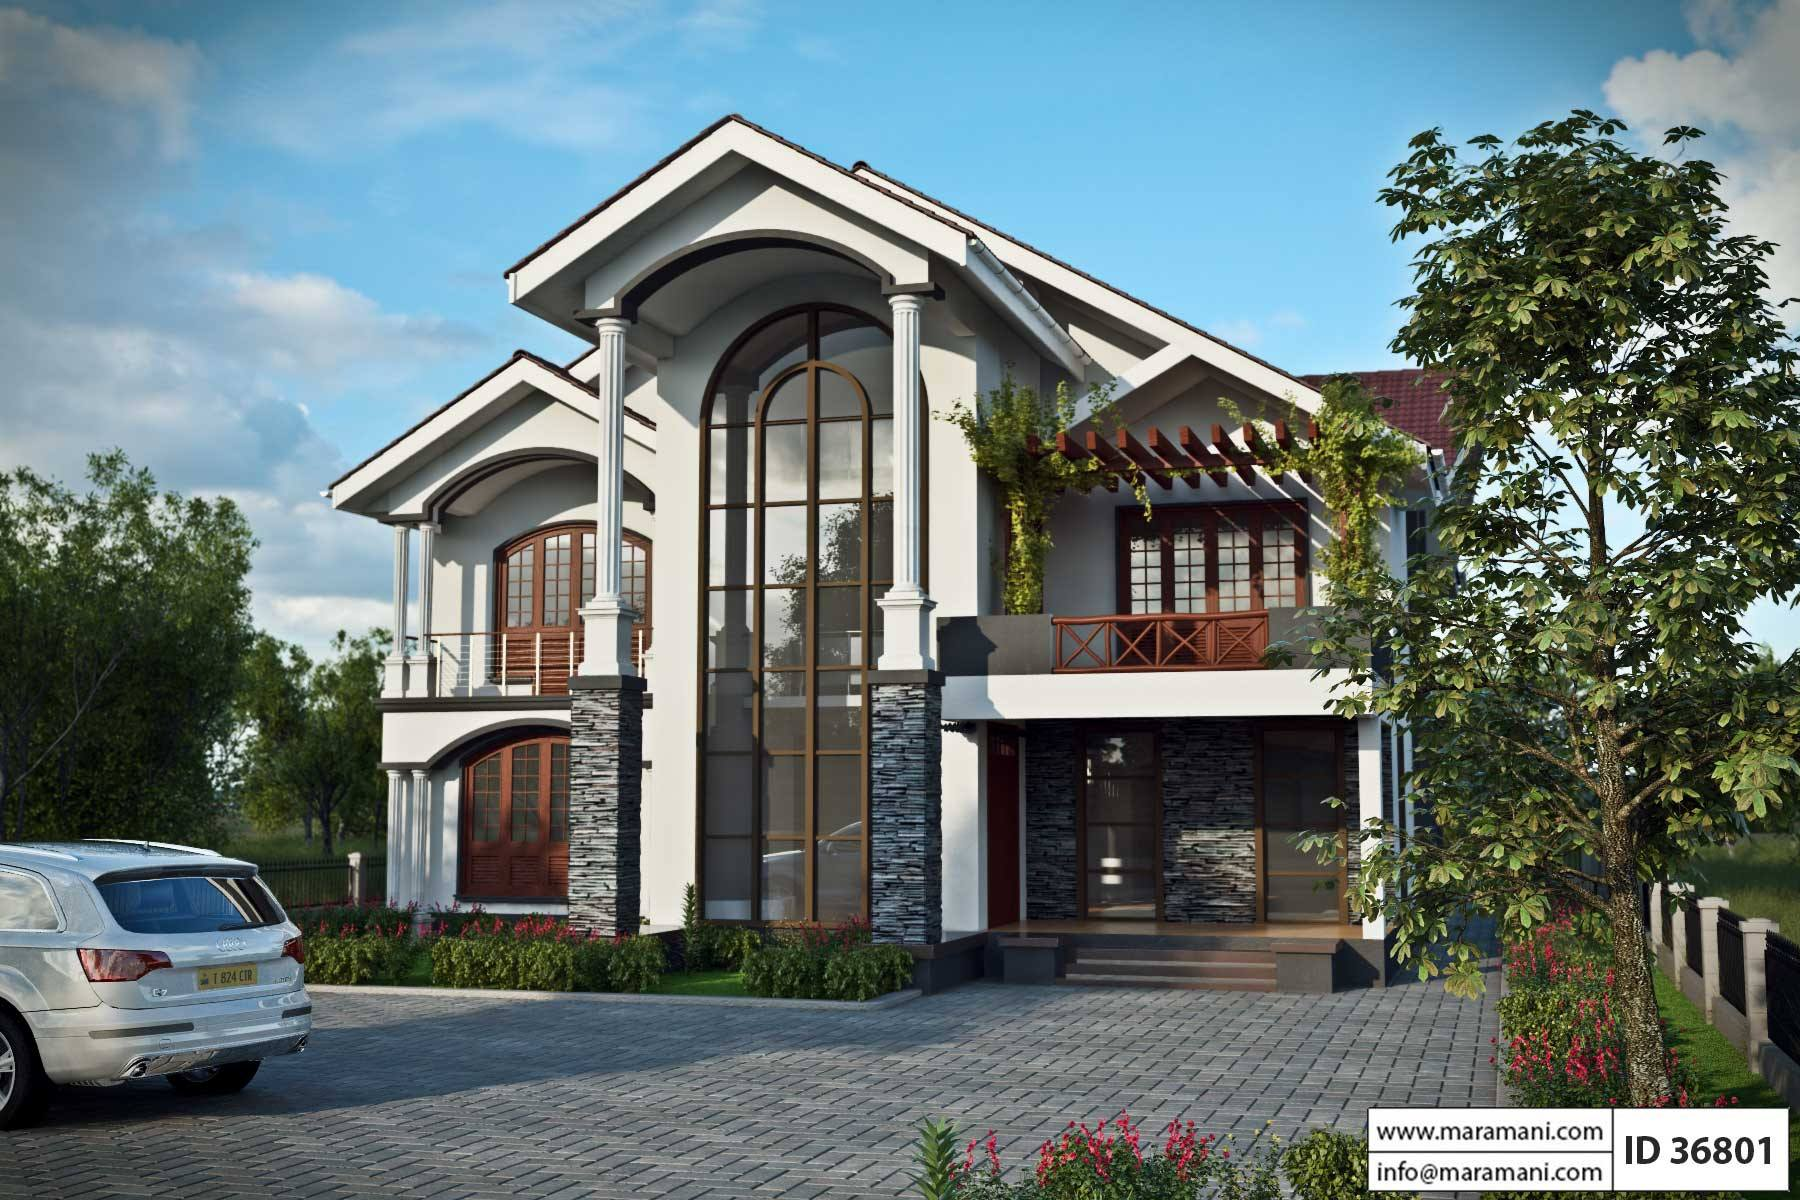 5 bedroom 3 story house plans - Floor Plans by Maramani